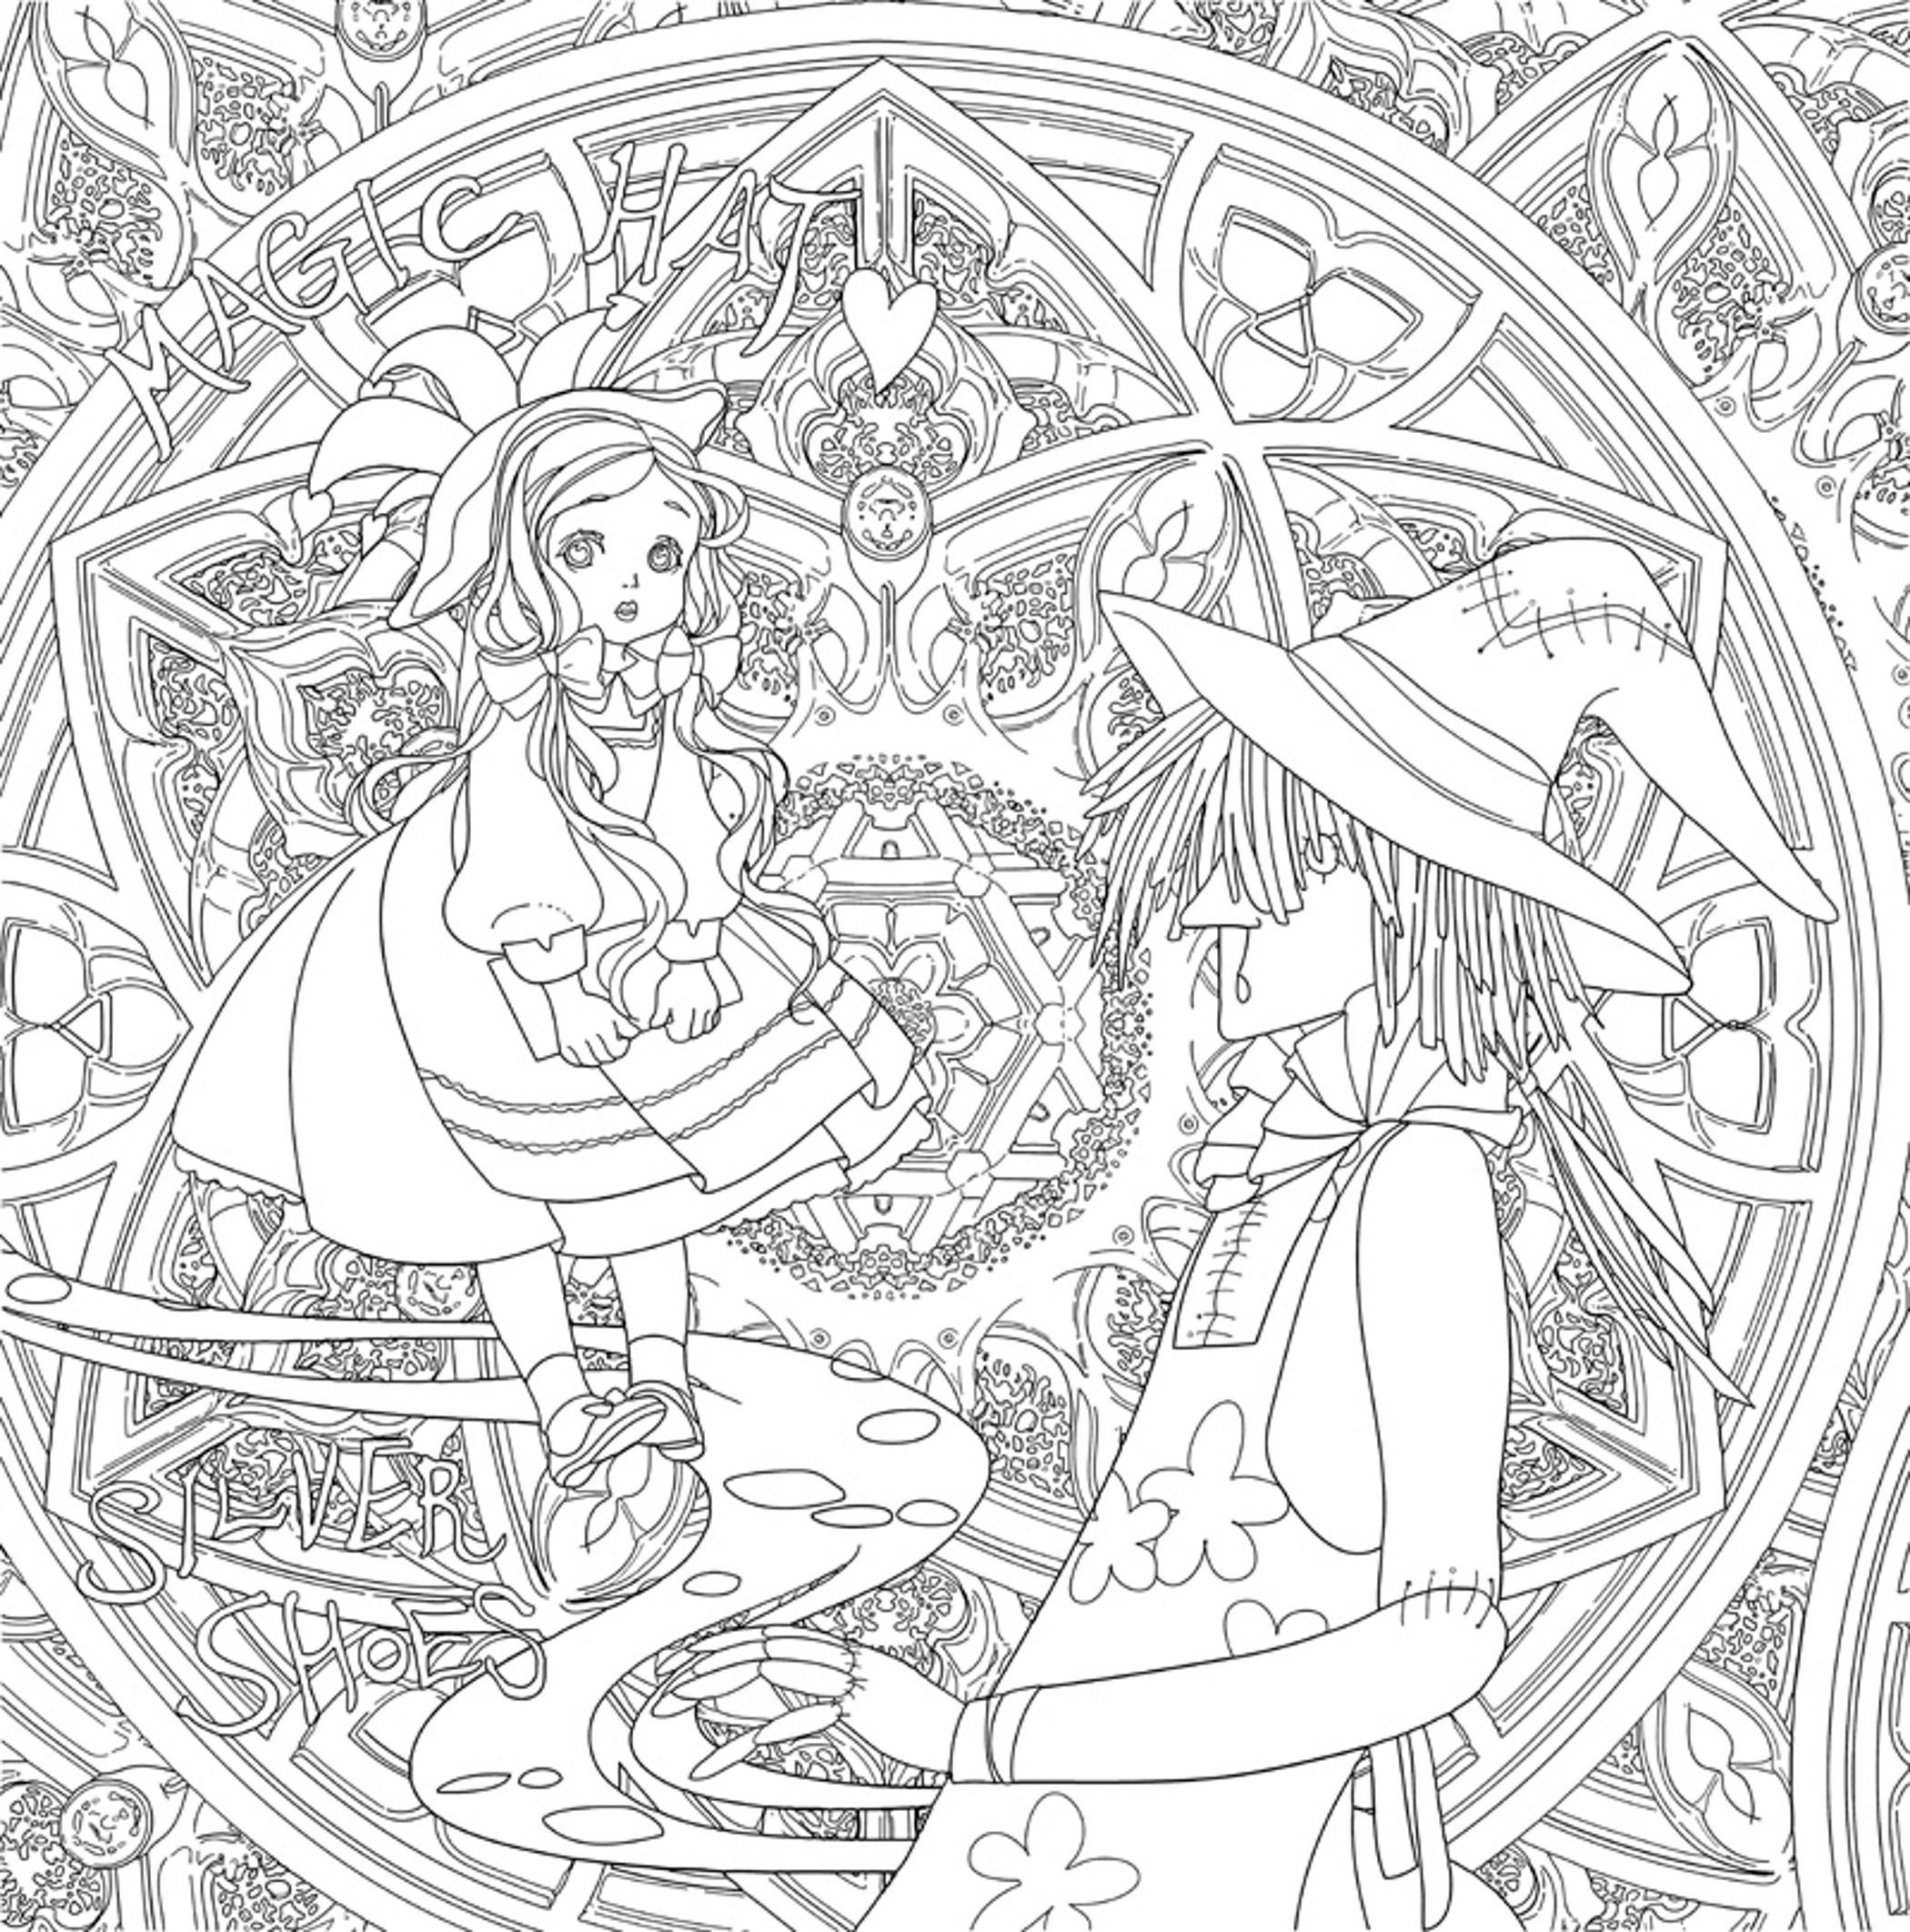 Wizards Of Waverly Place Printable Coloring Pages  Wizards Waverly Place Coloring Pages